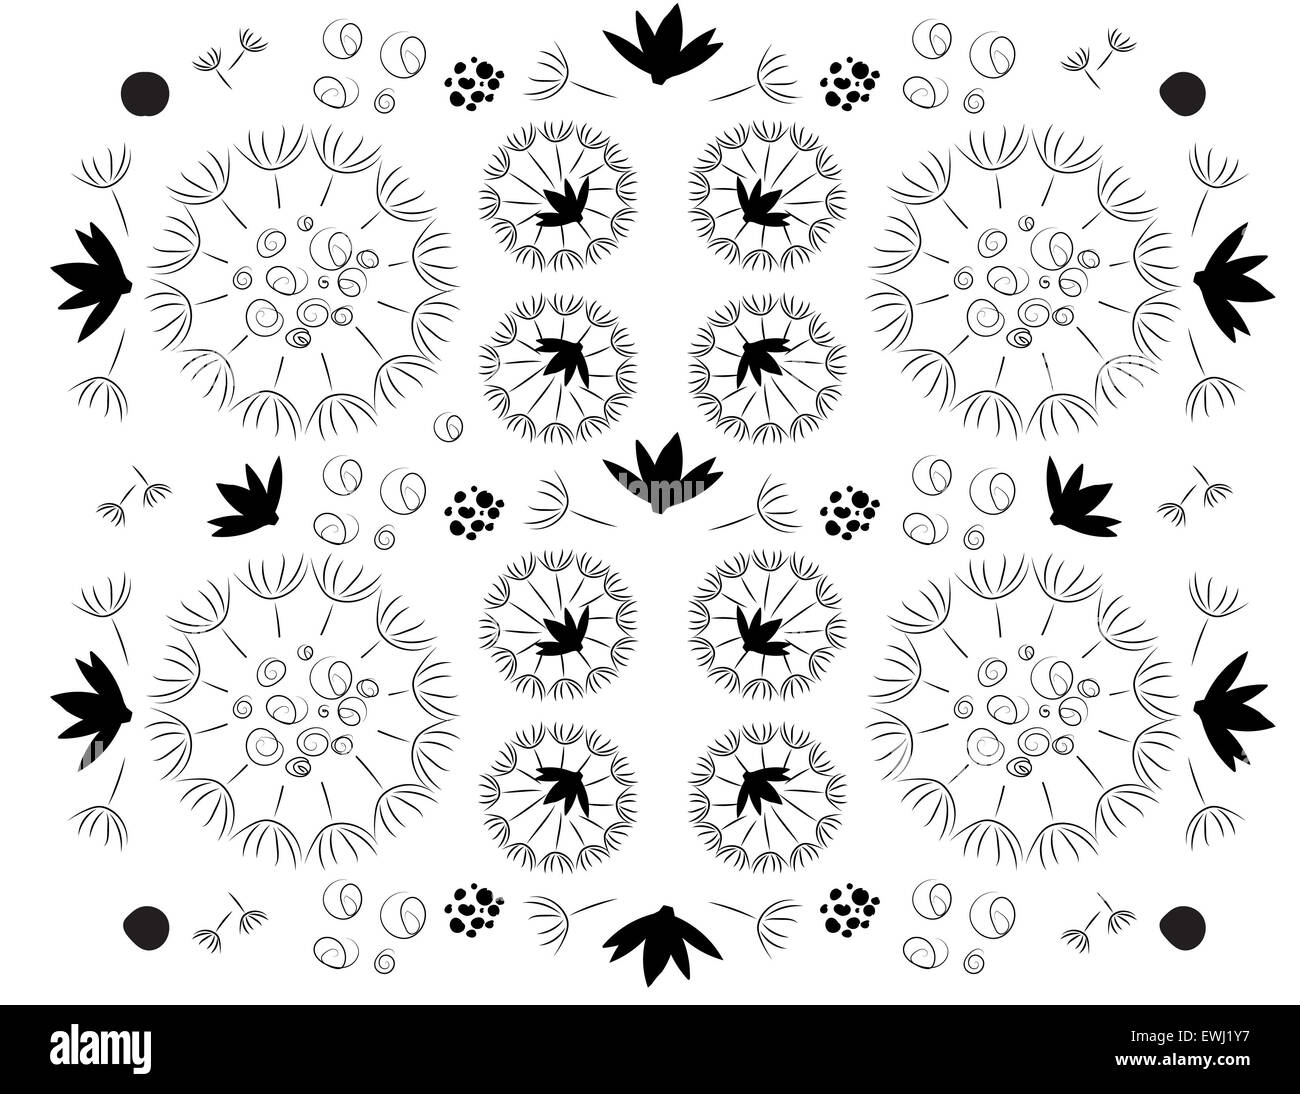 Original floral composition in black and white to decorate all your spaces - Stock Image